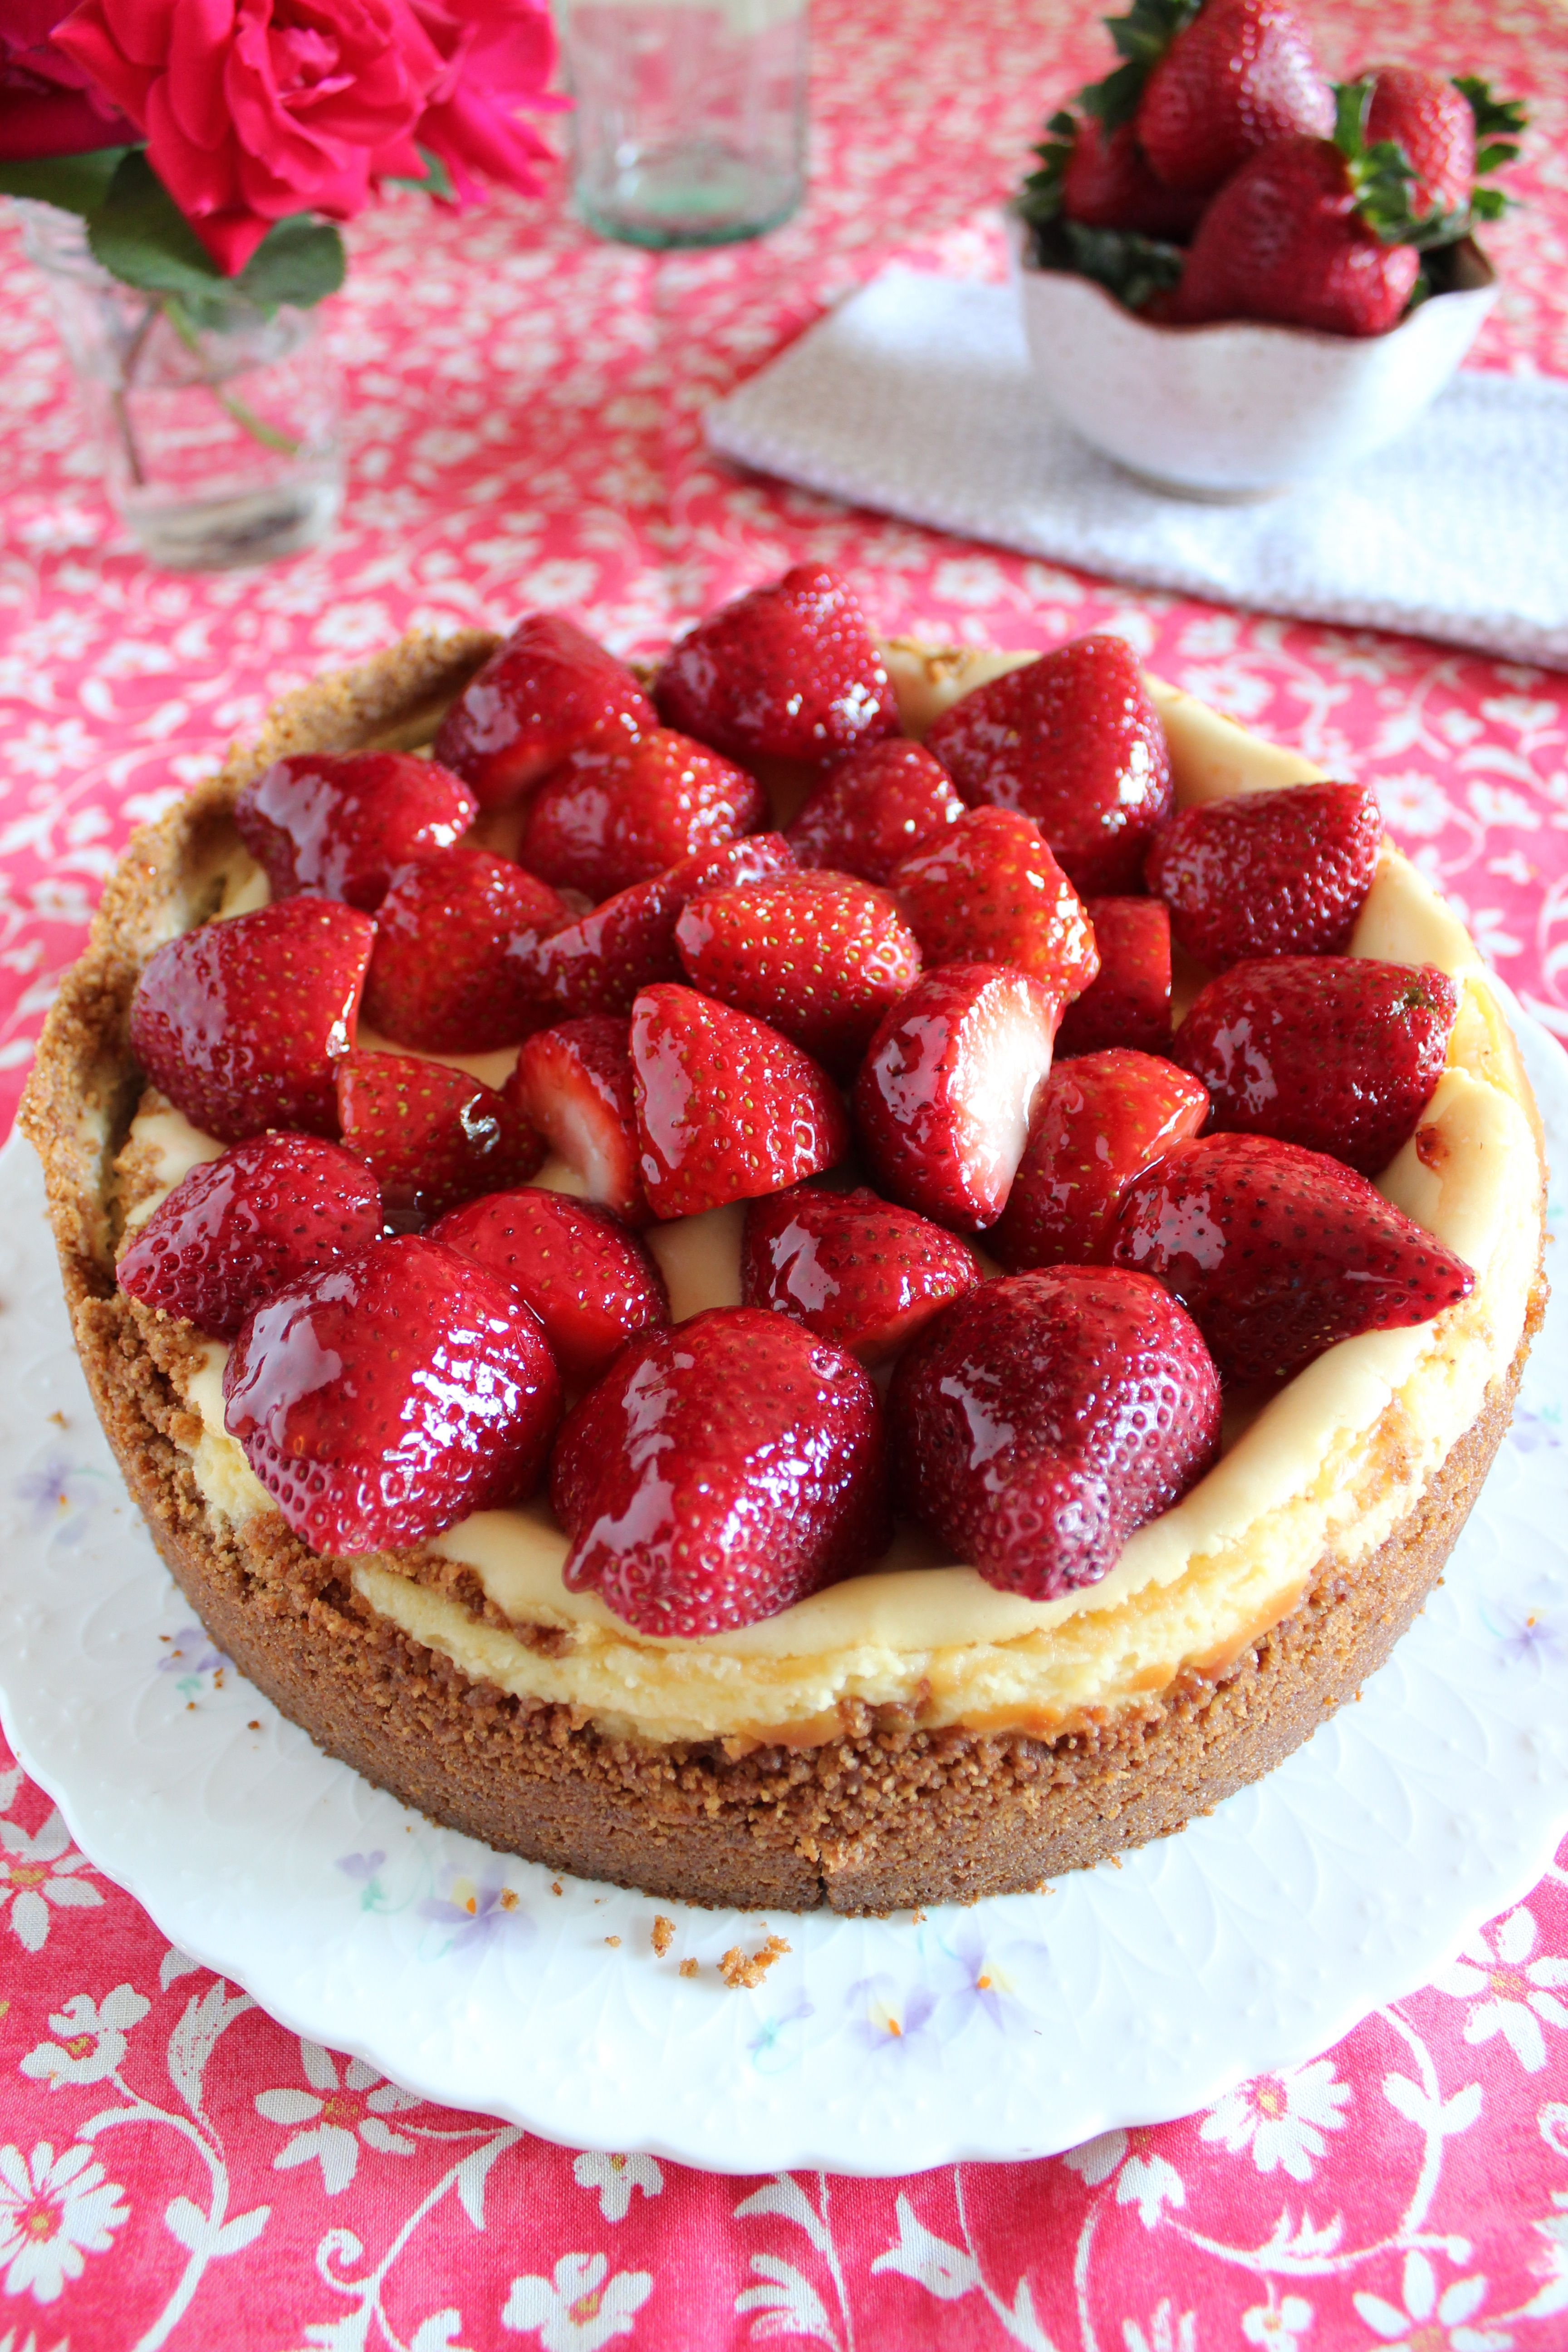 yummy-looking cheesecake